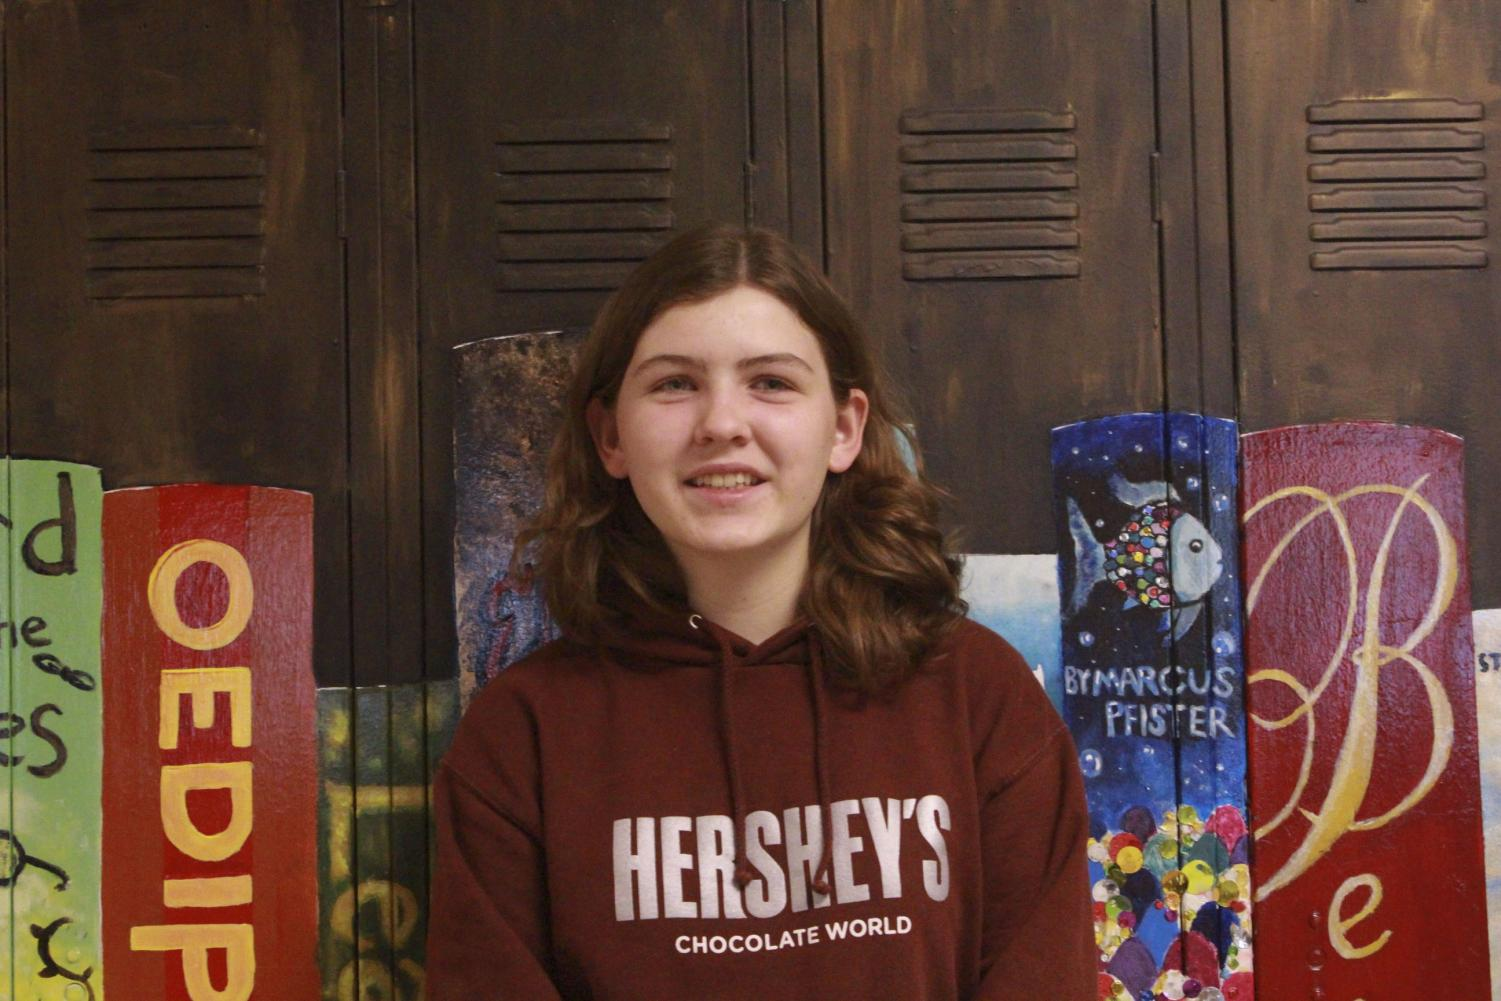 Emma Stankus, a PV sophomore, will be going to Jamaica on Dec. 13 for a Christmas mission trip. She has been collecting donations for children in several areas of the country.